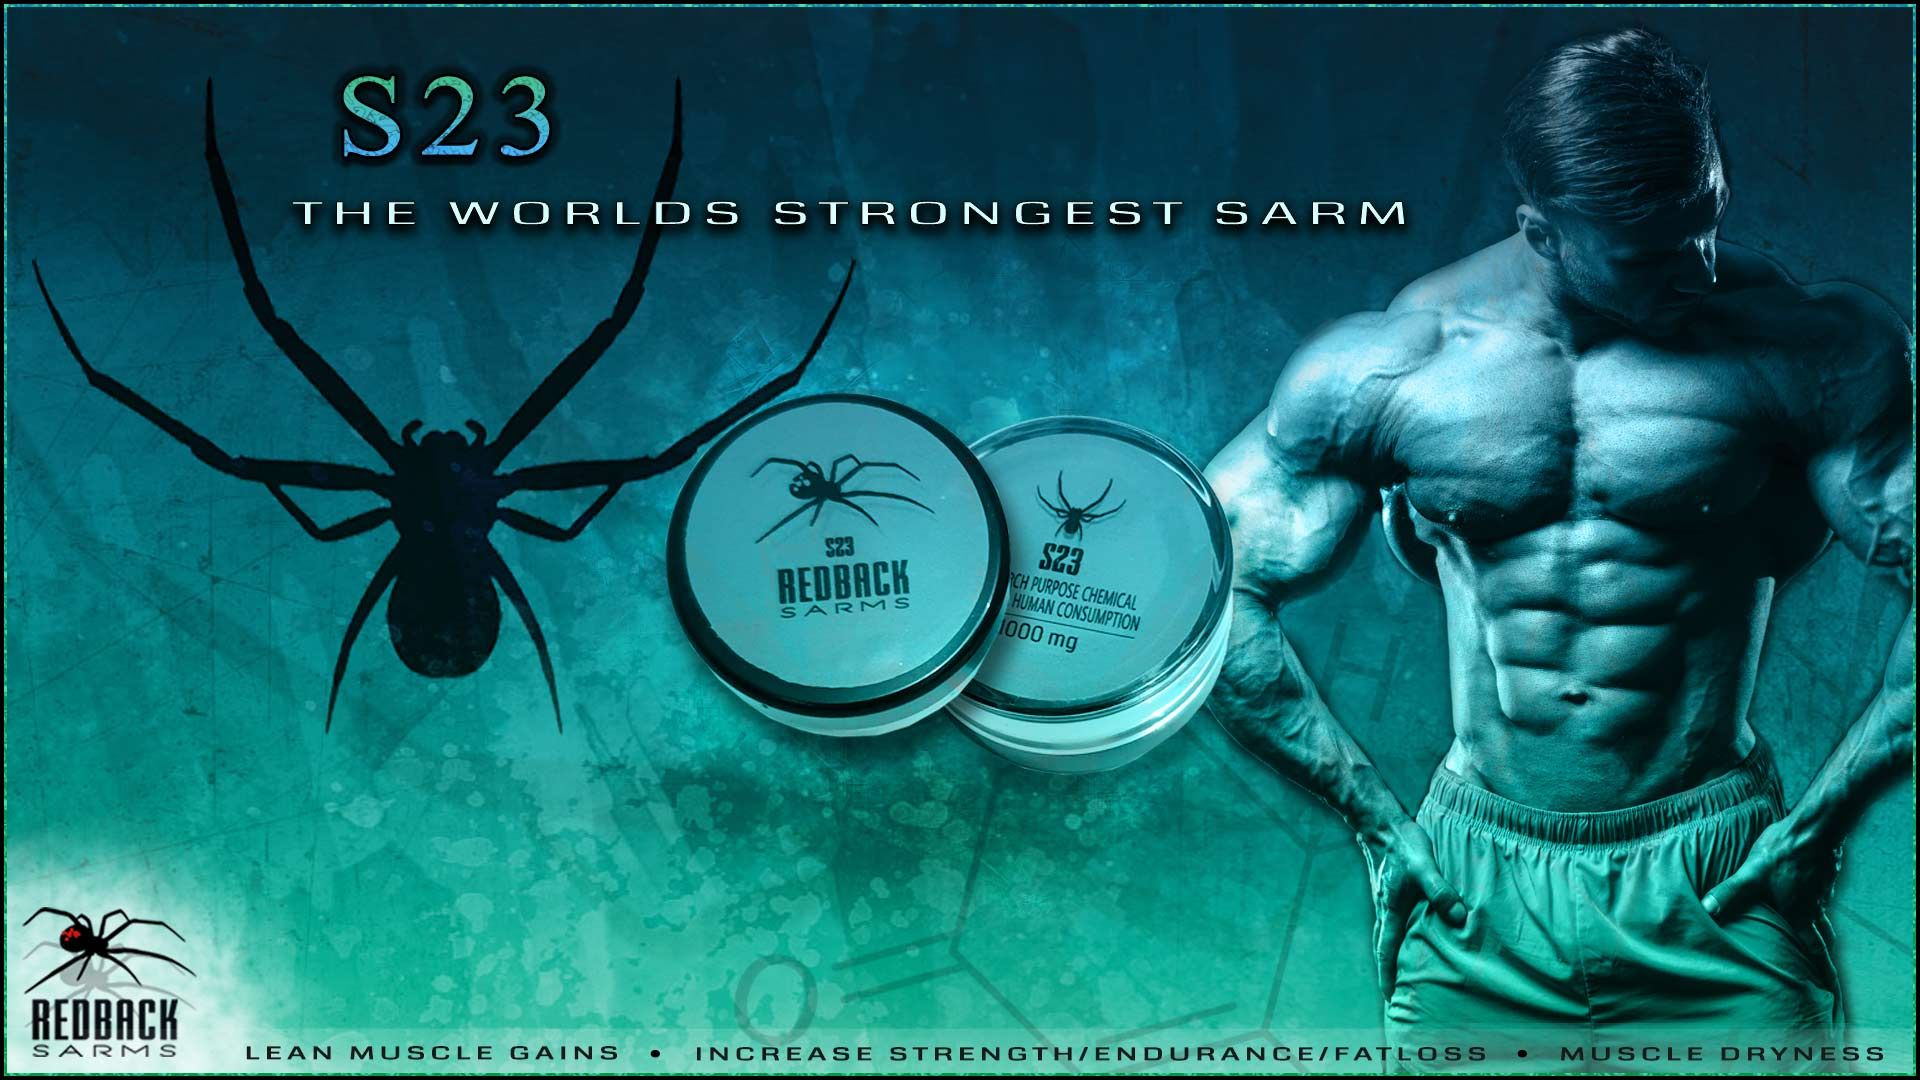 S23 is known to be the most potent SARM in the world